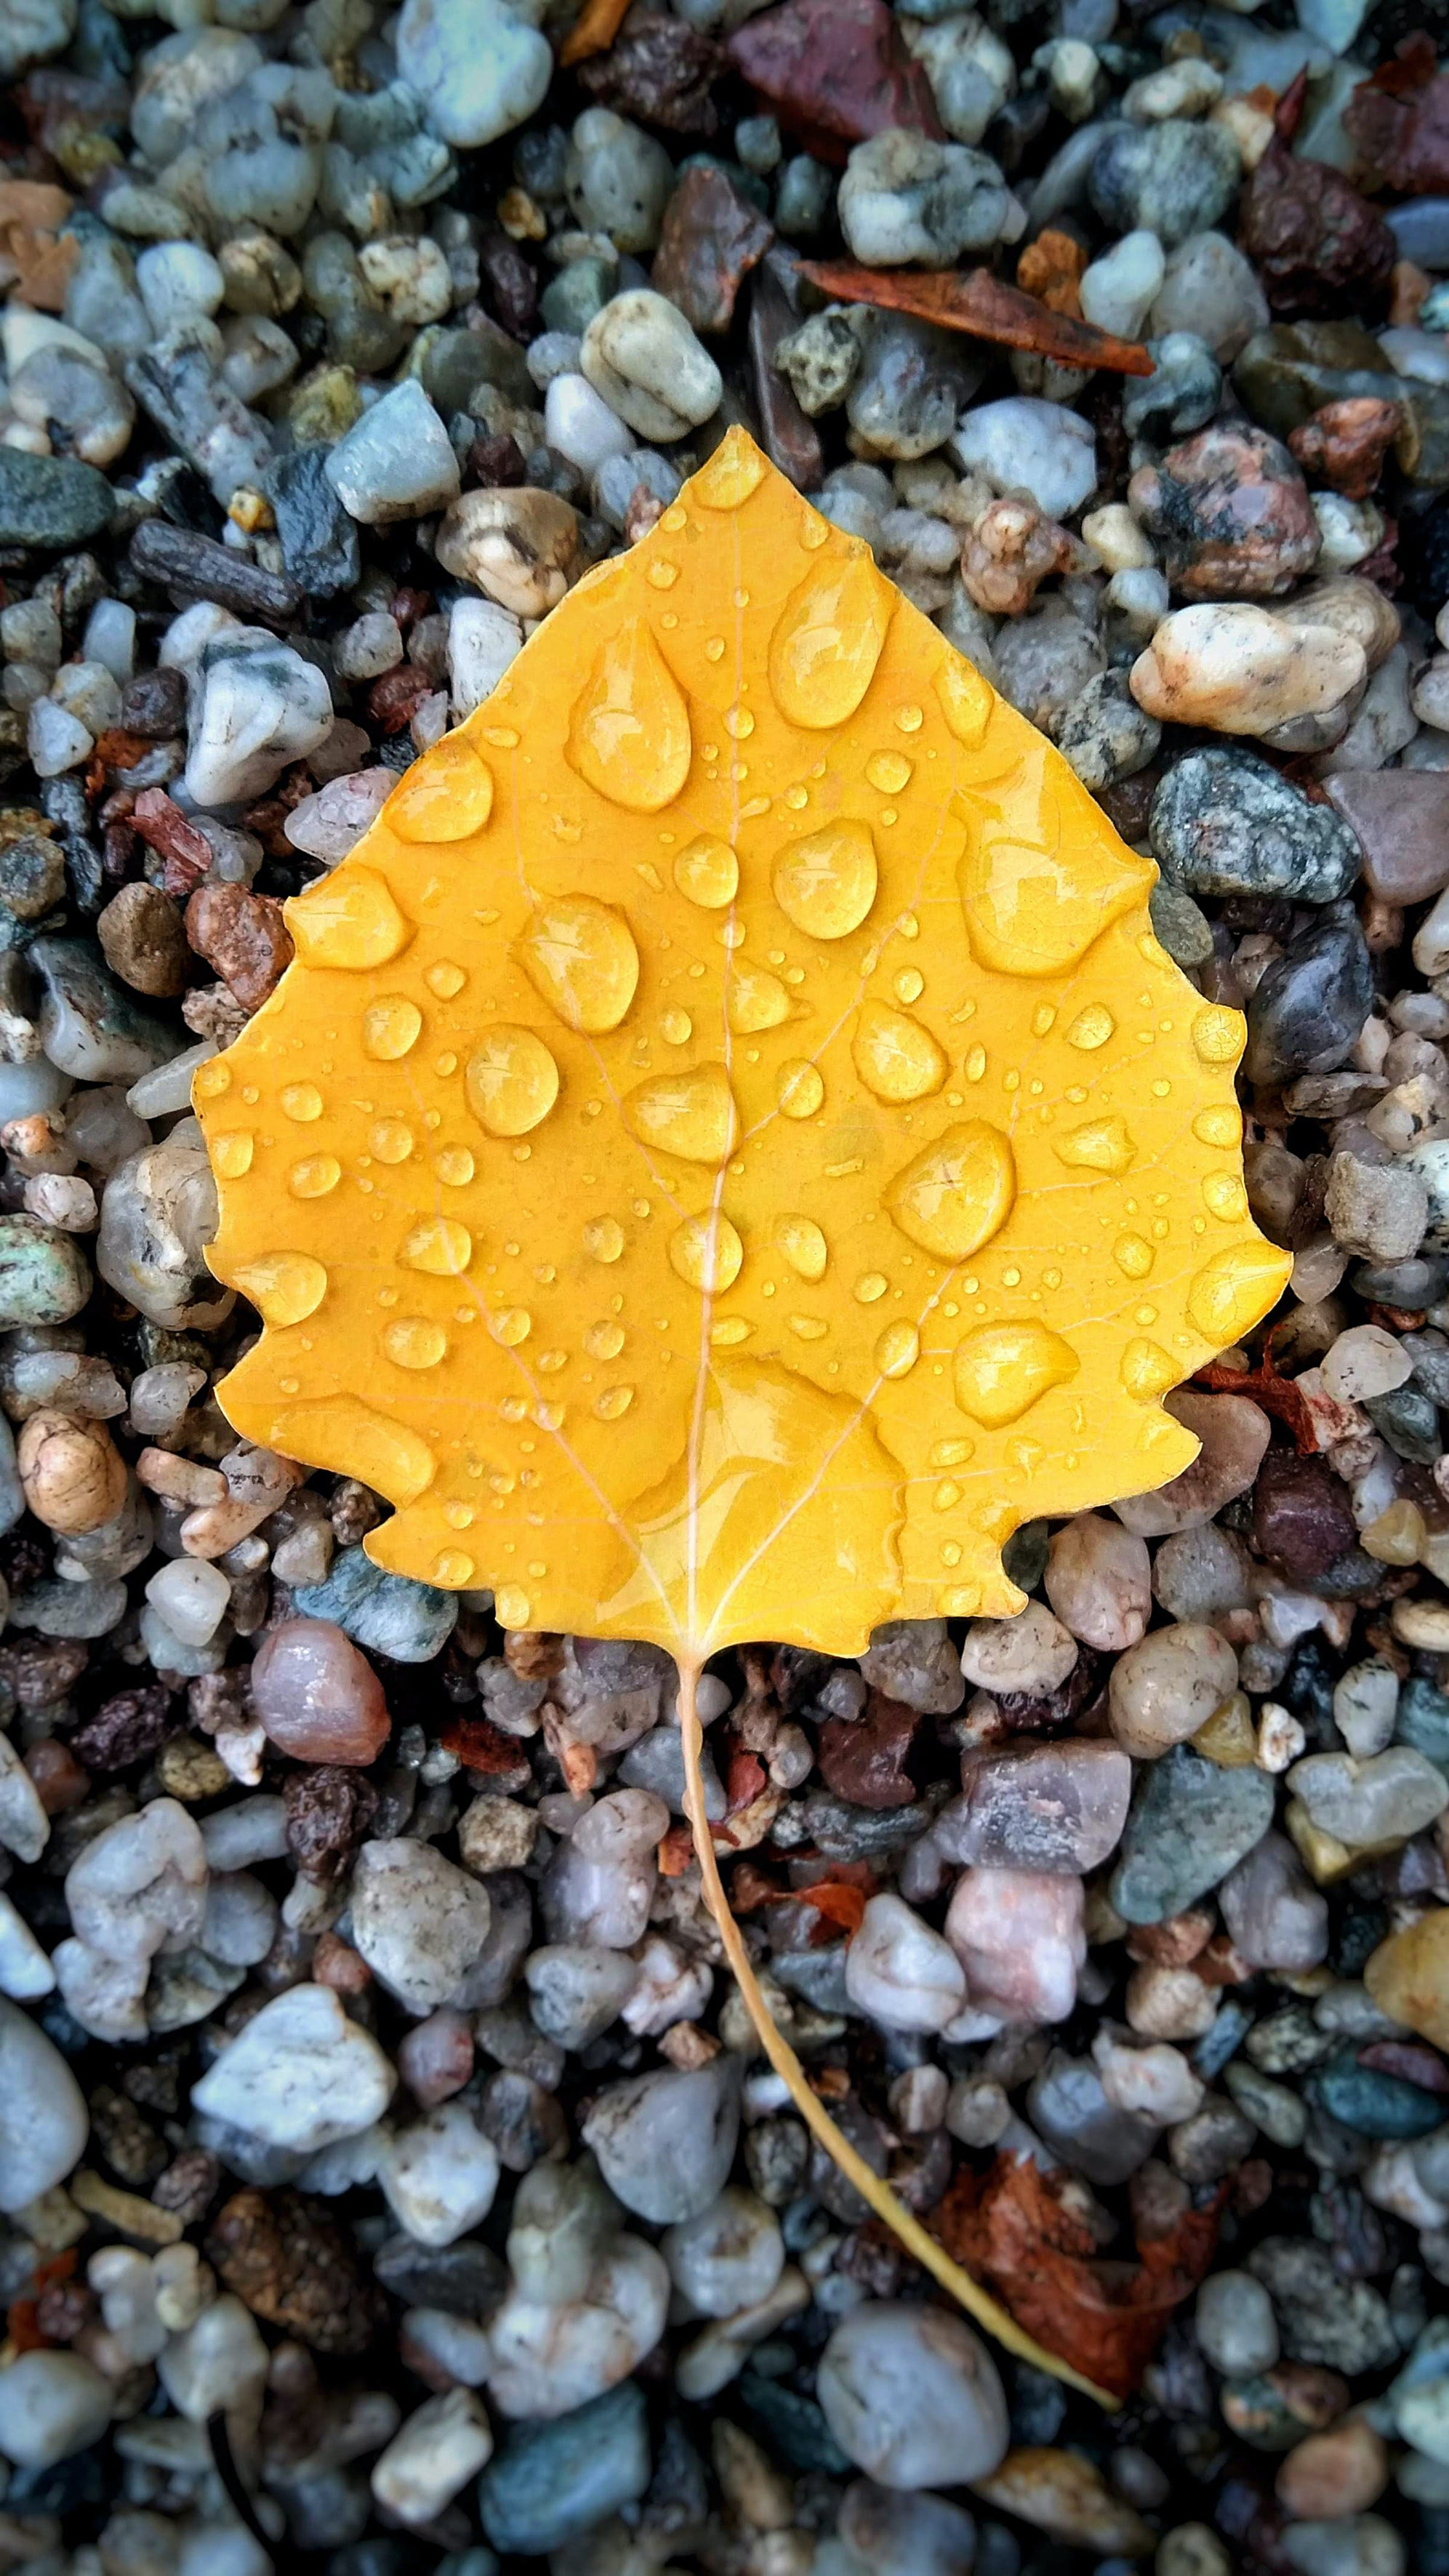 Yellow leaf on gray pebble background